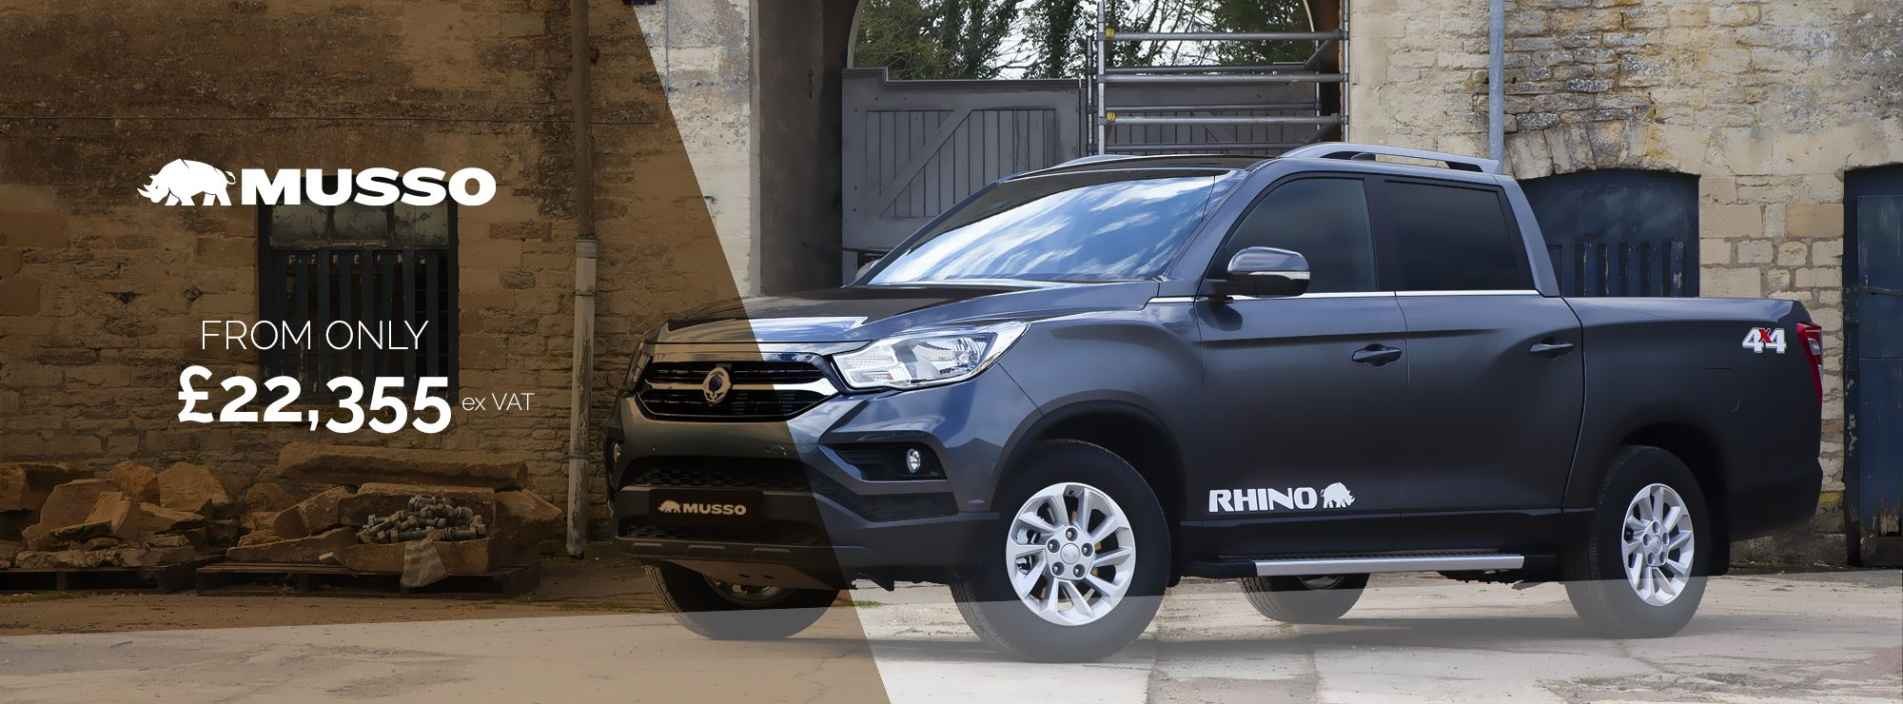 SsangYong Musso and Musso Rhino Banner